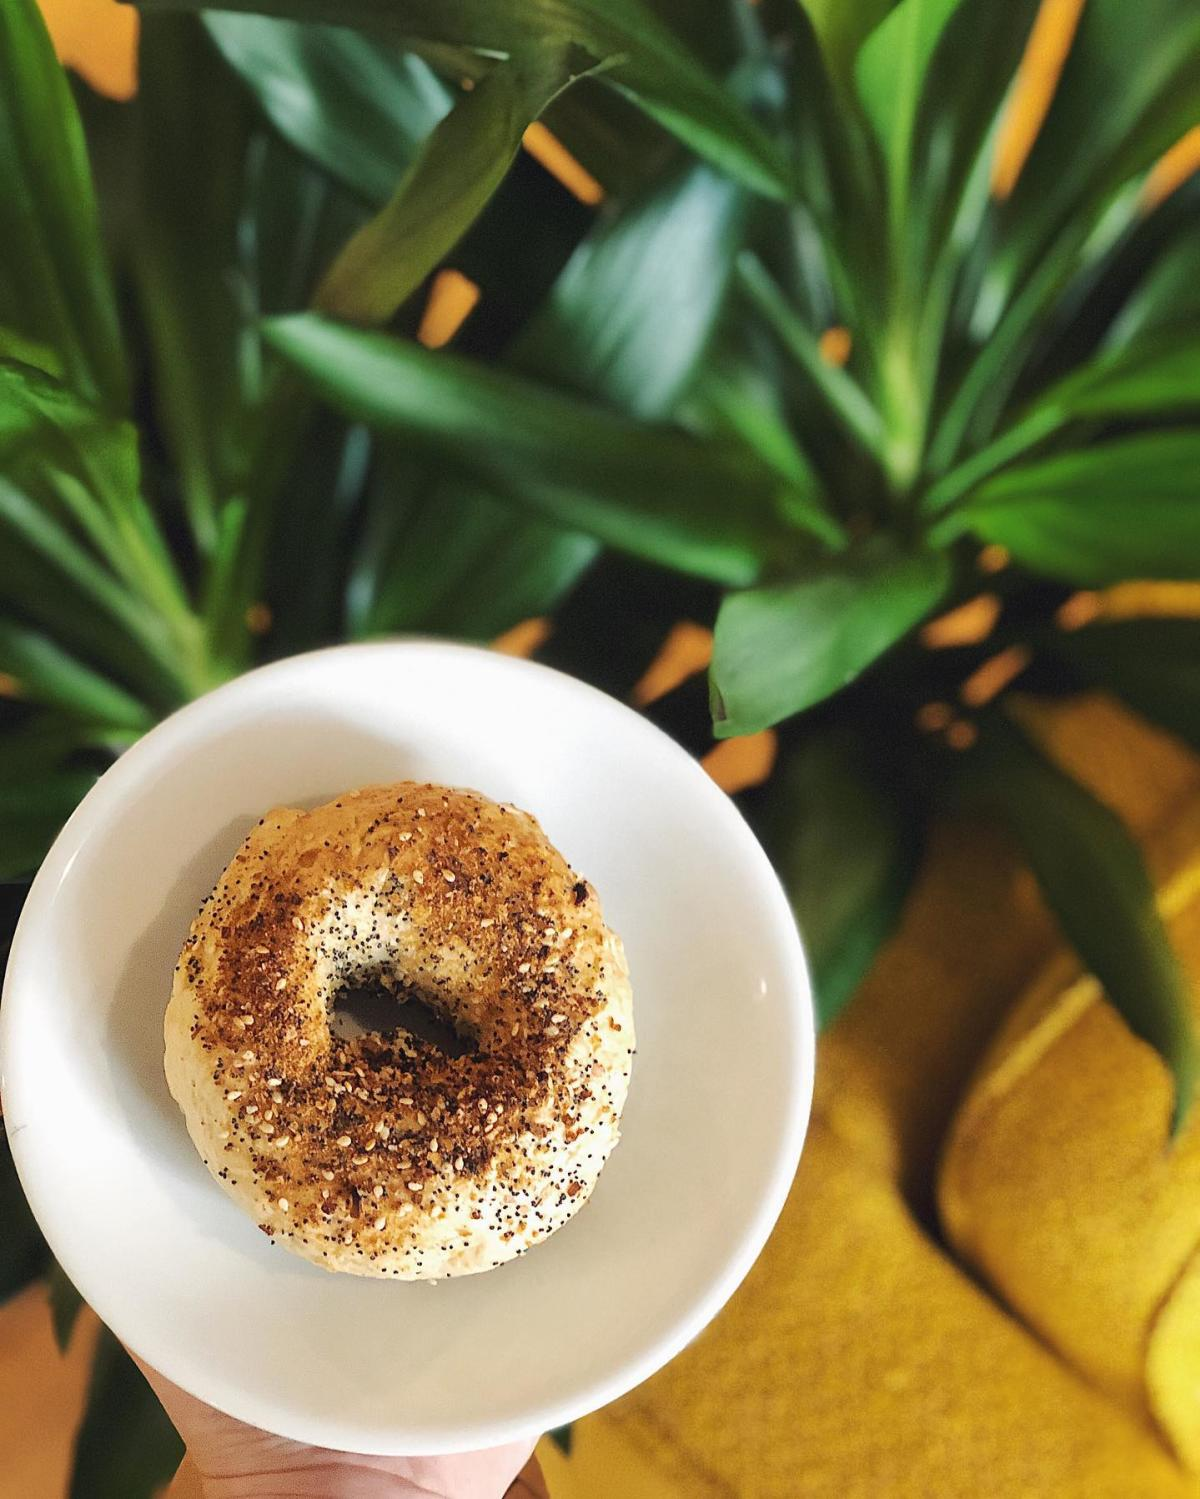 Fresh, scratch-made, vegan Everything bagel on a plate at Populace Coffee in Bay City